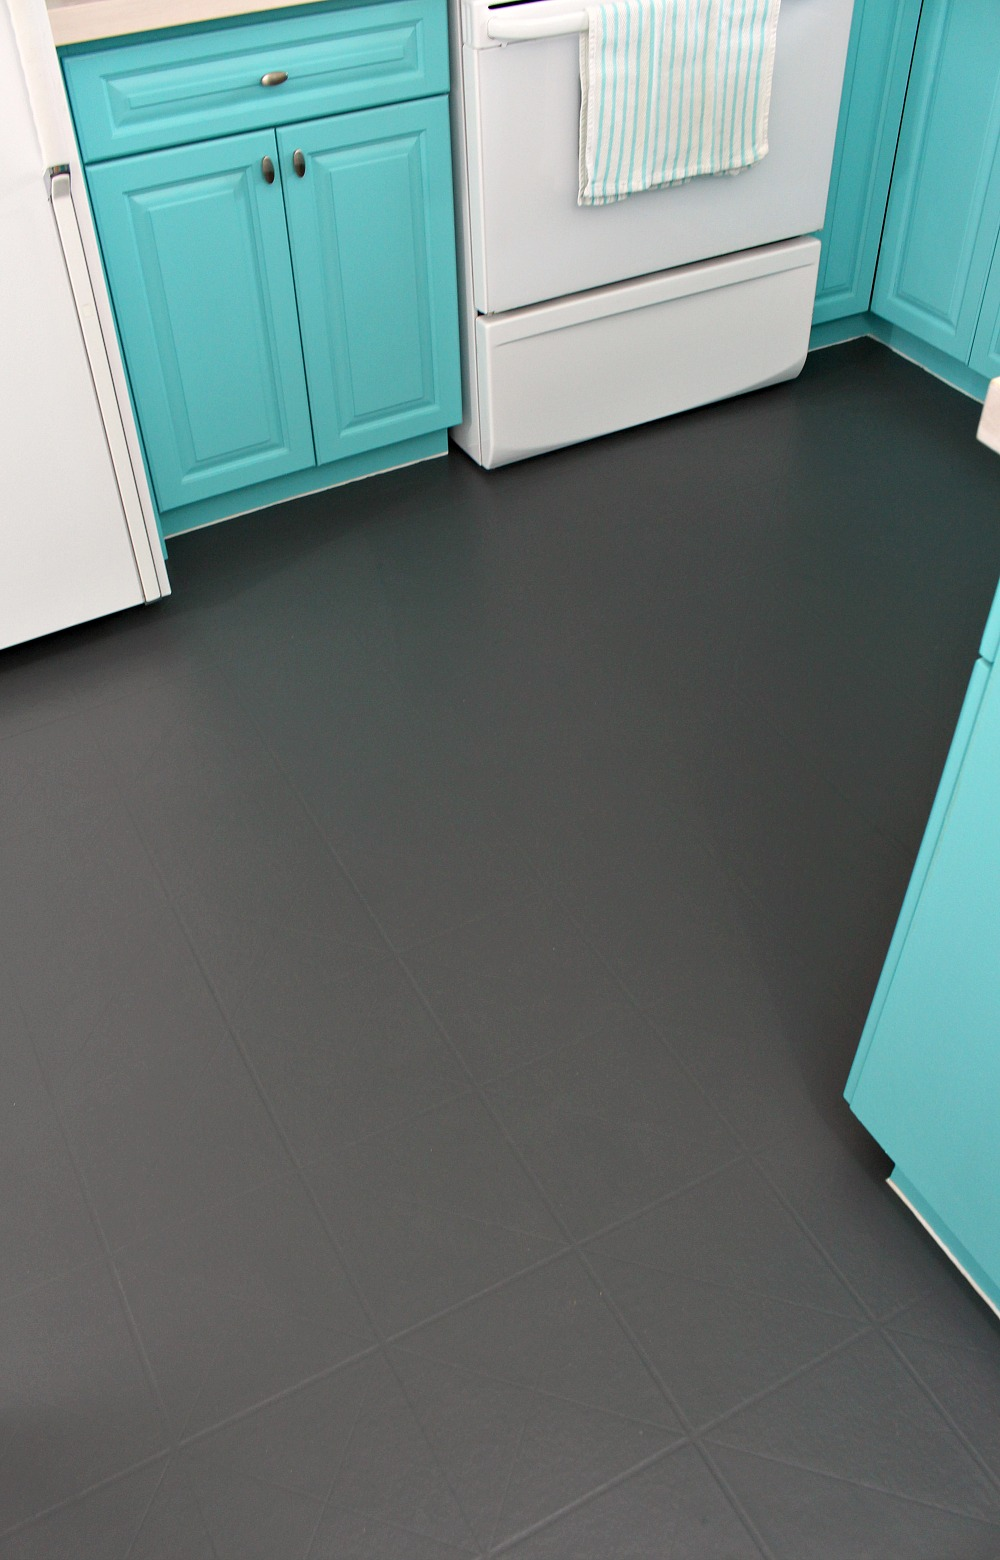 Kitchen Floor Tiles Pictures How To Paint A Vinyl Floor Diy Painted Floors Dans Le Lakehouse